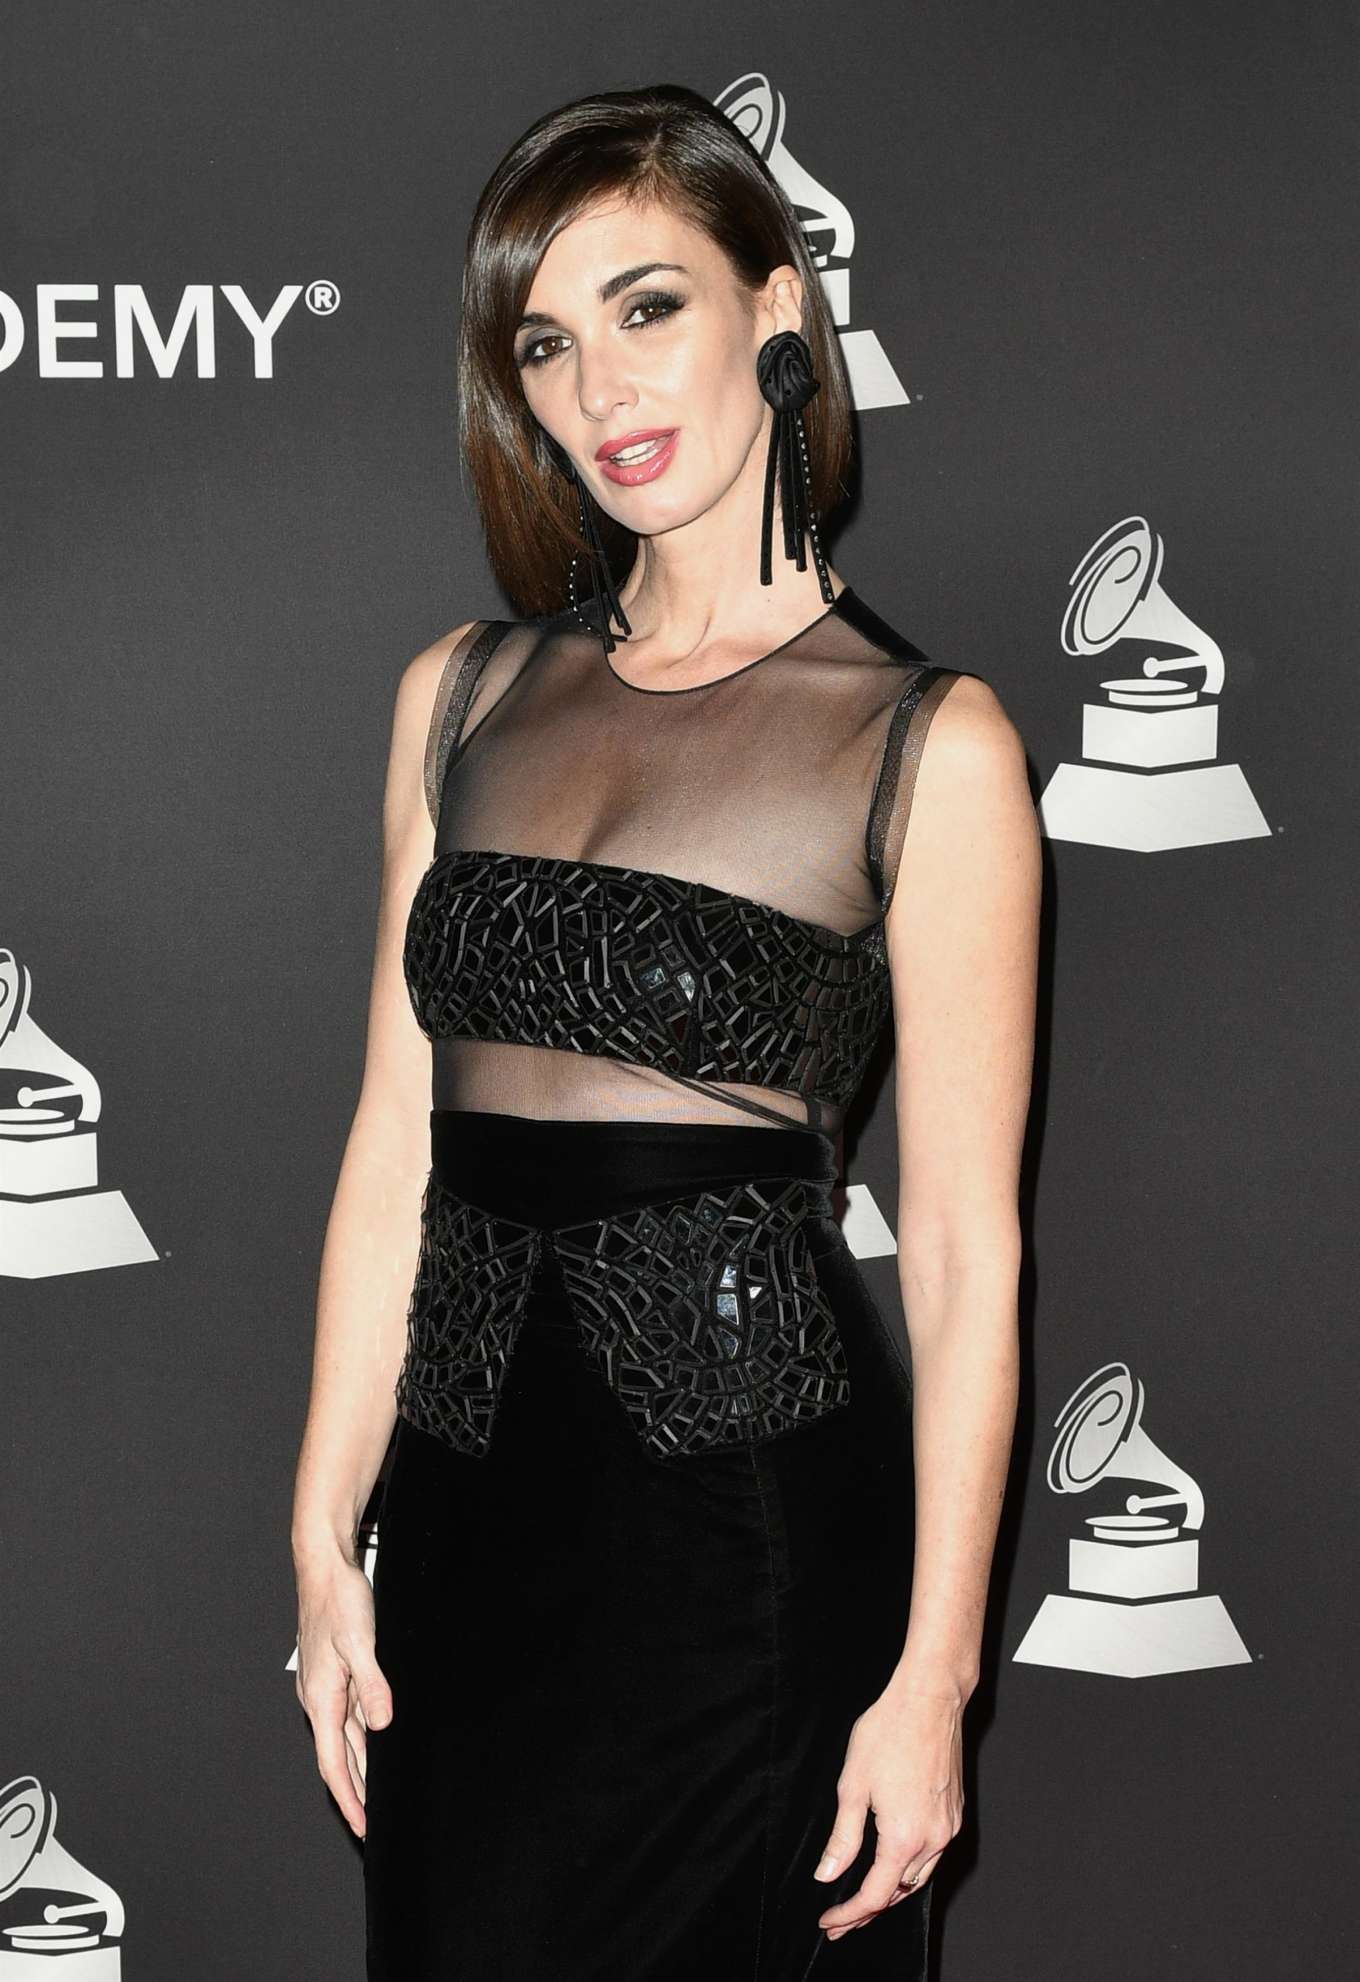 Paz Vega - Latin Recording Academy Person of the Year 2019 Gala in Las Vegas